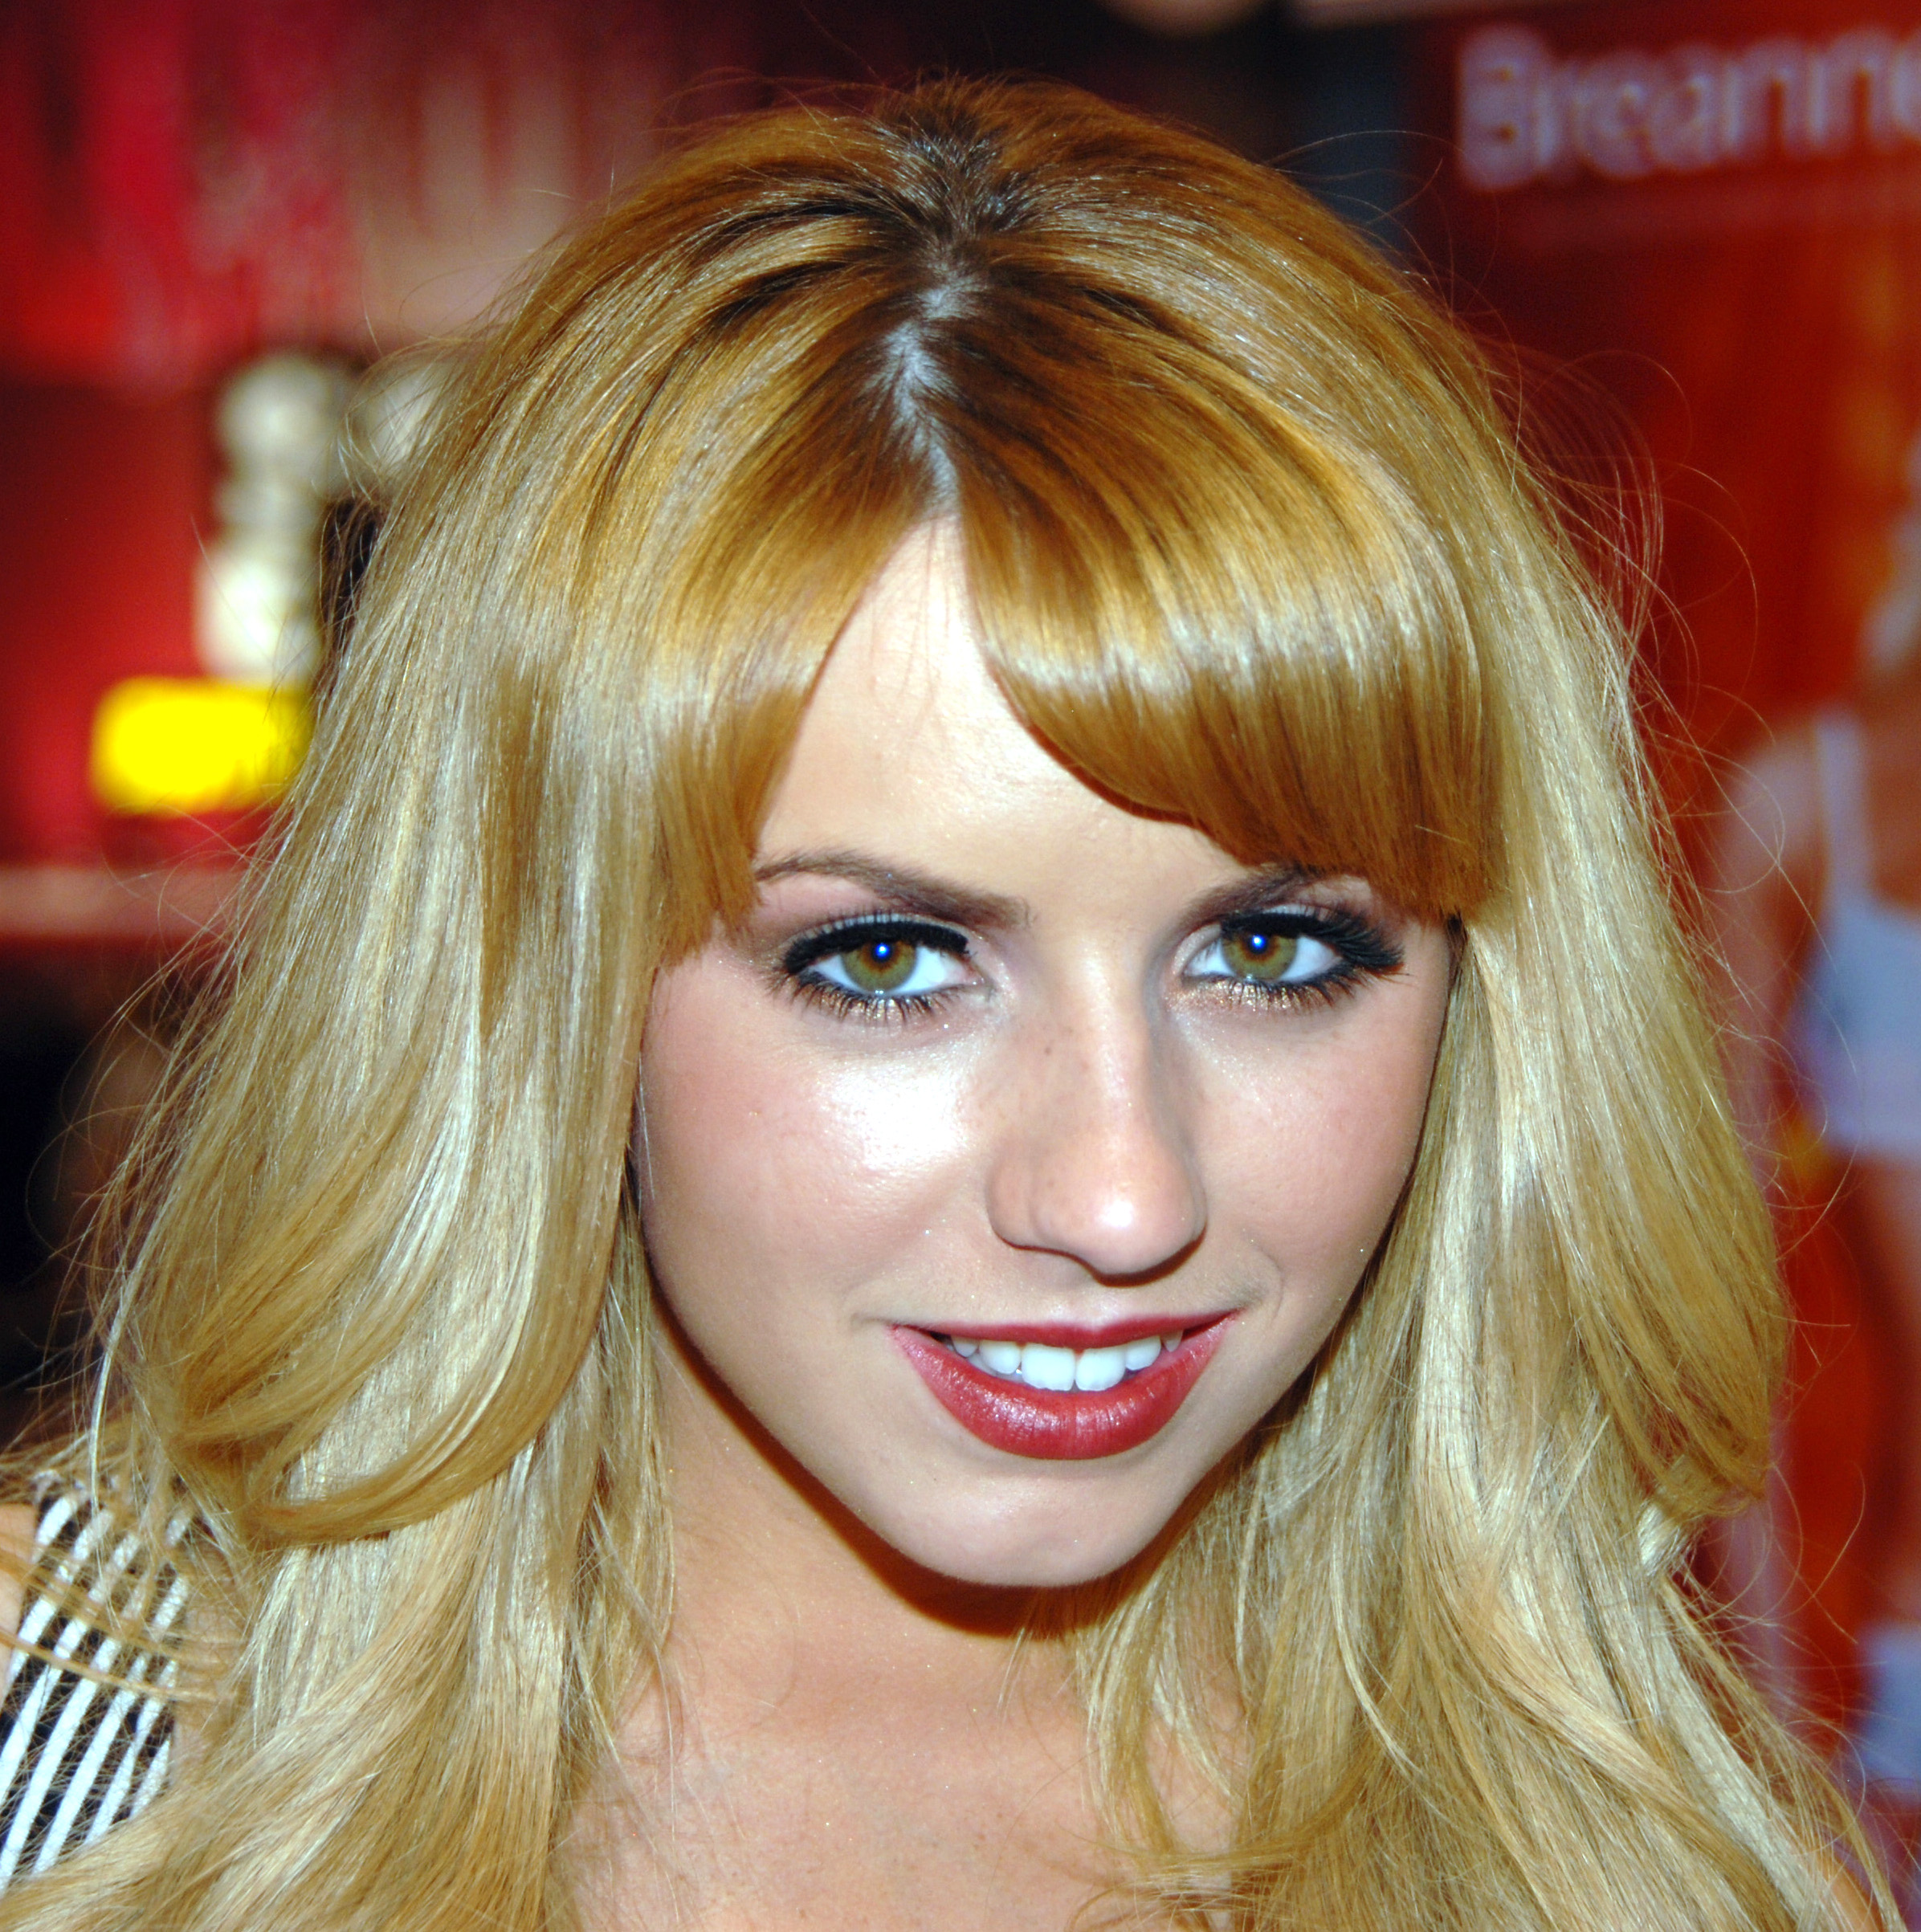 Description Lexi Belle Exxxotica Miami Beach 1 adjusted.jpg